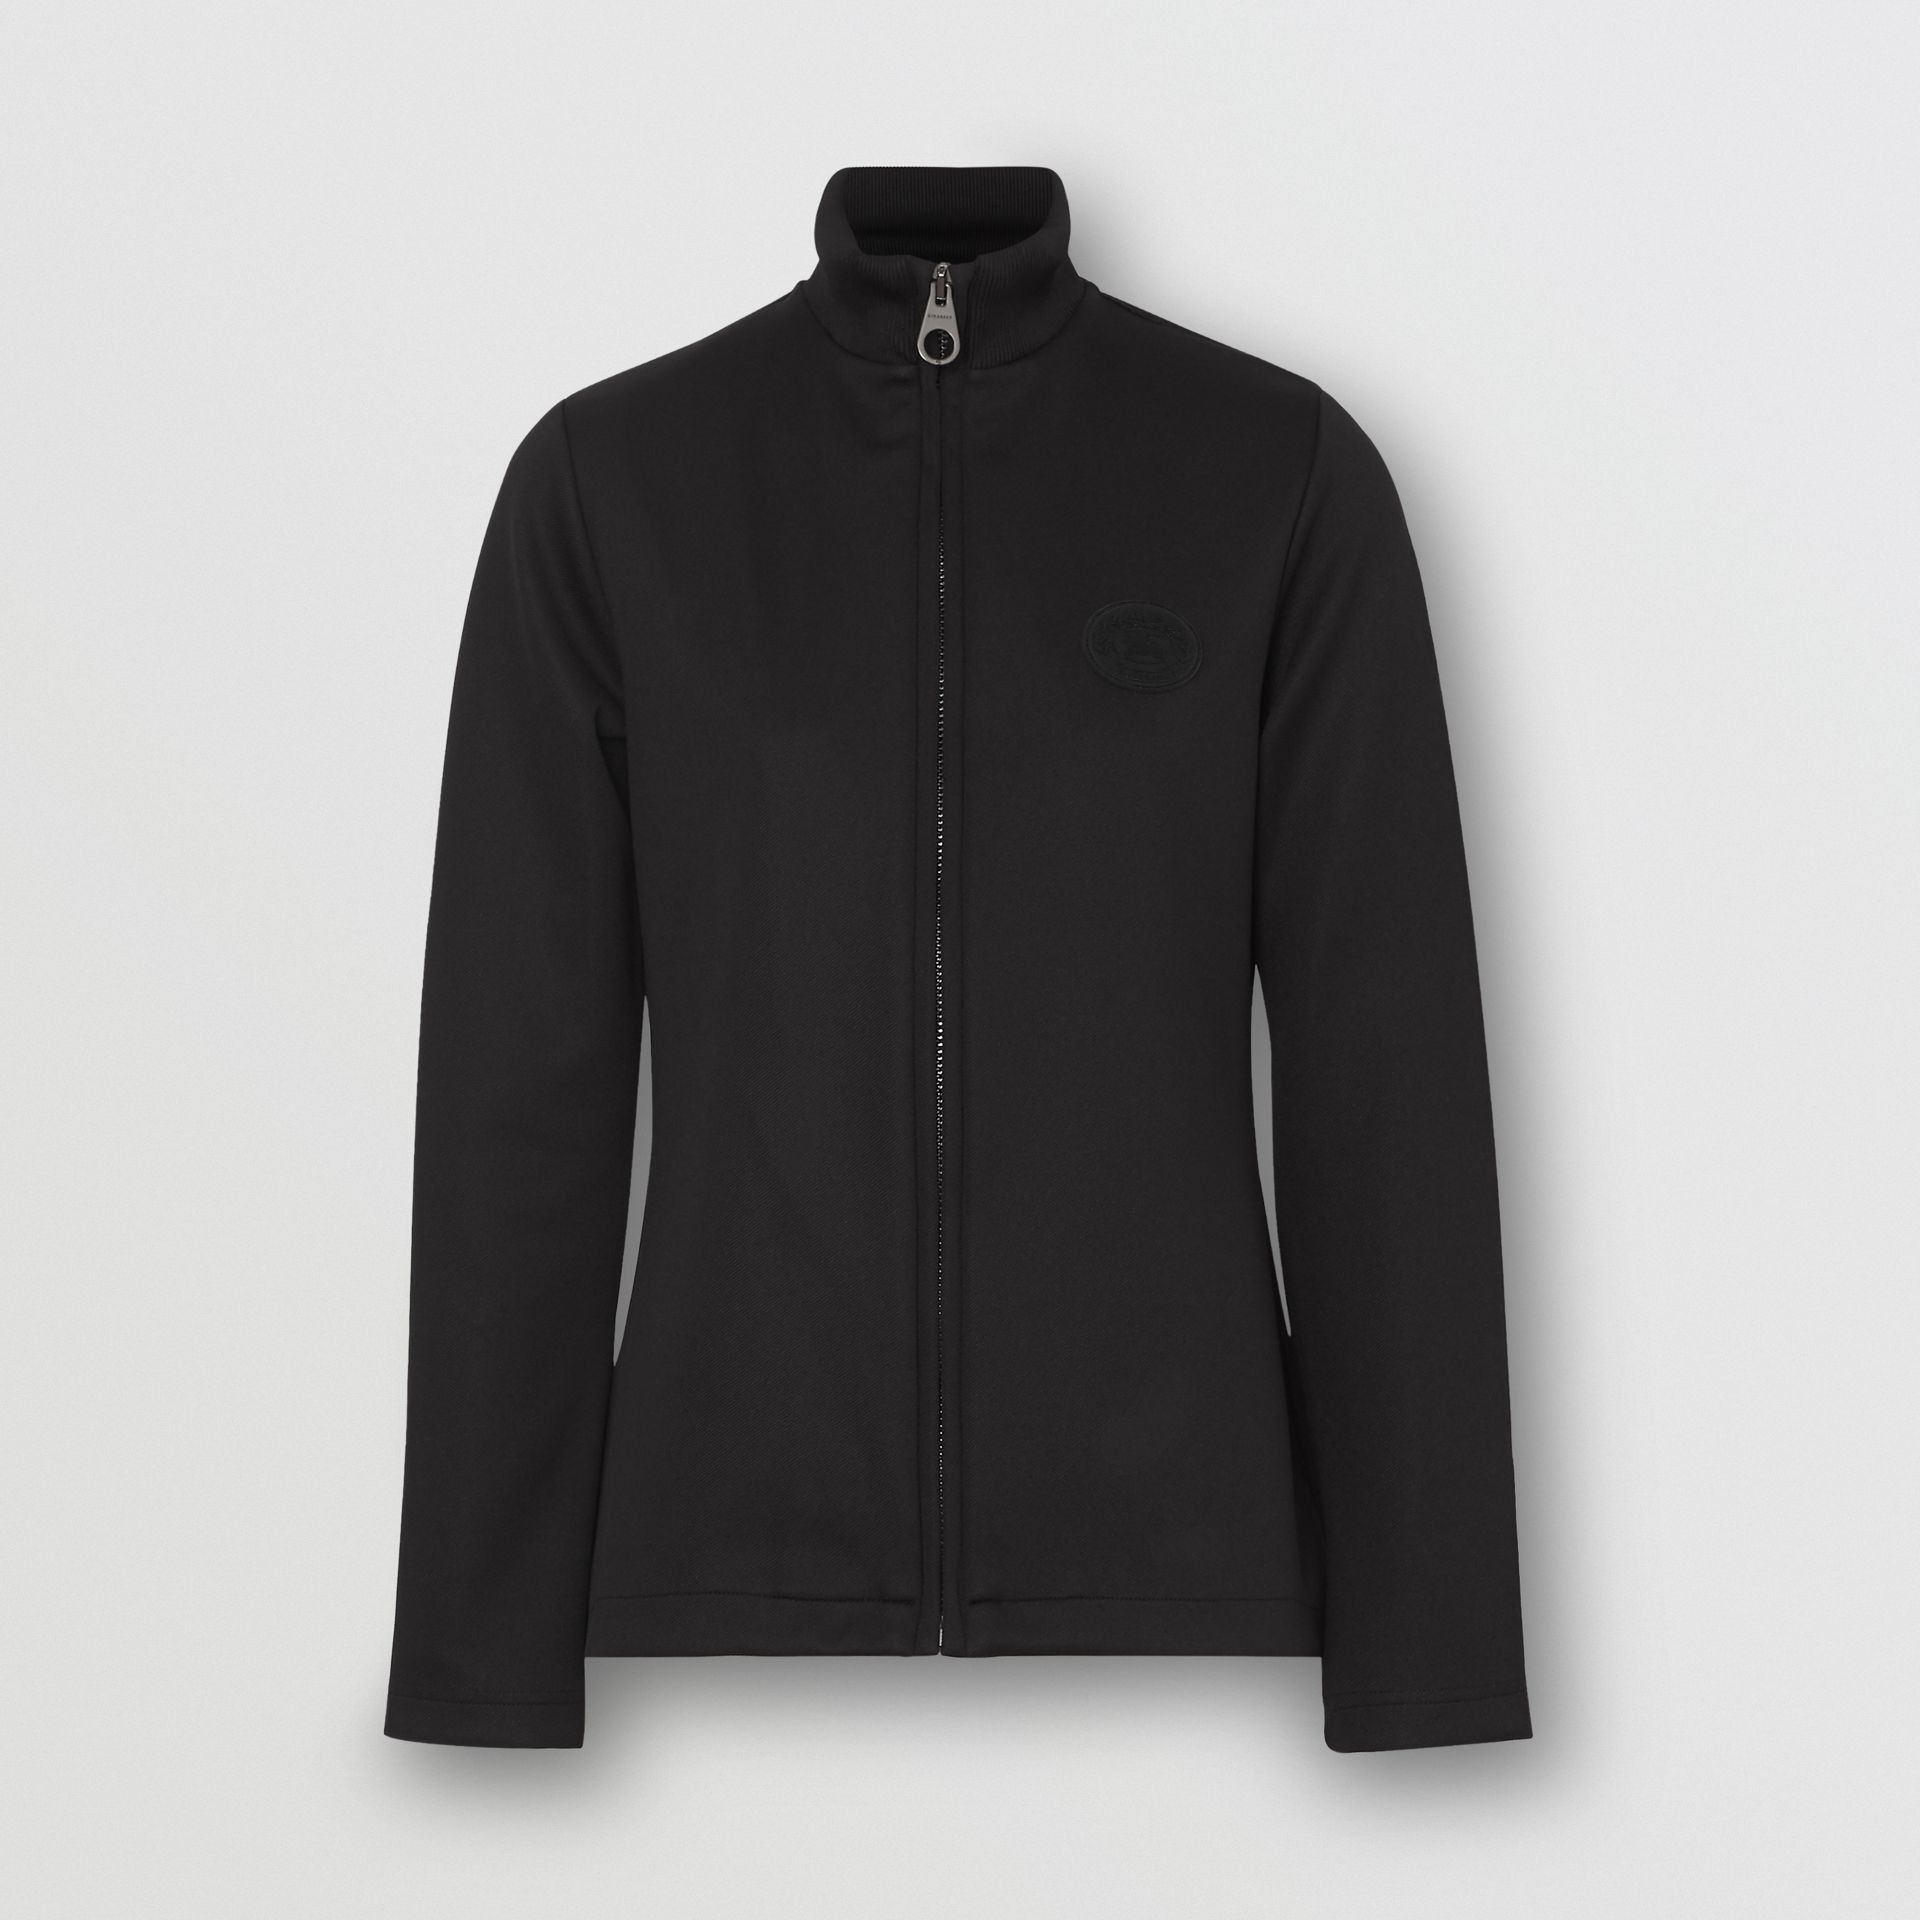 Crest Detail Funnel-neck Track Top in Black - Women | Burberry Australia - gallery image 3